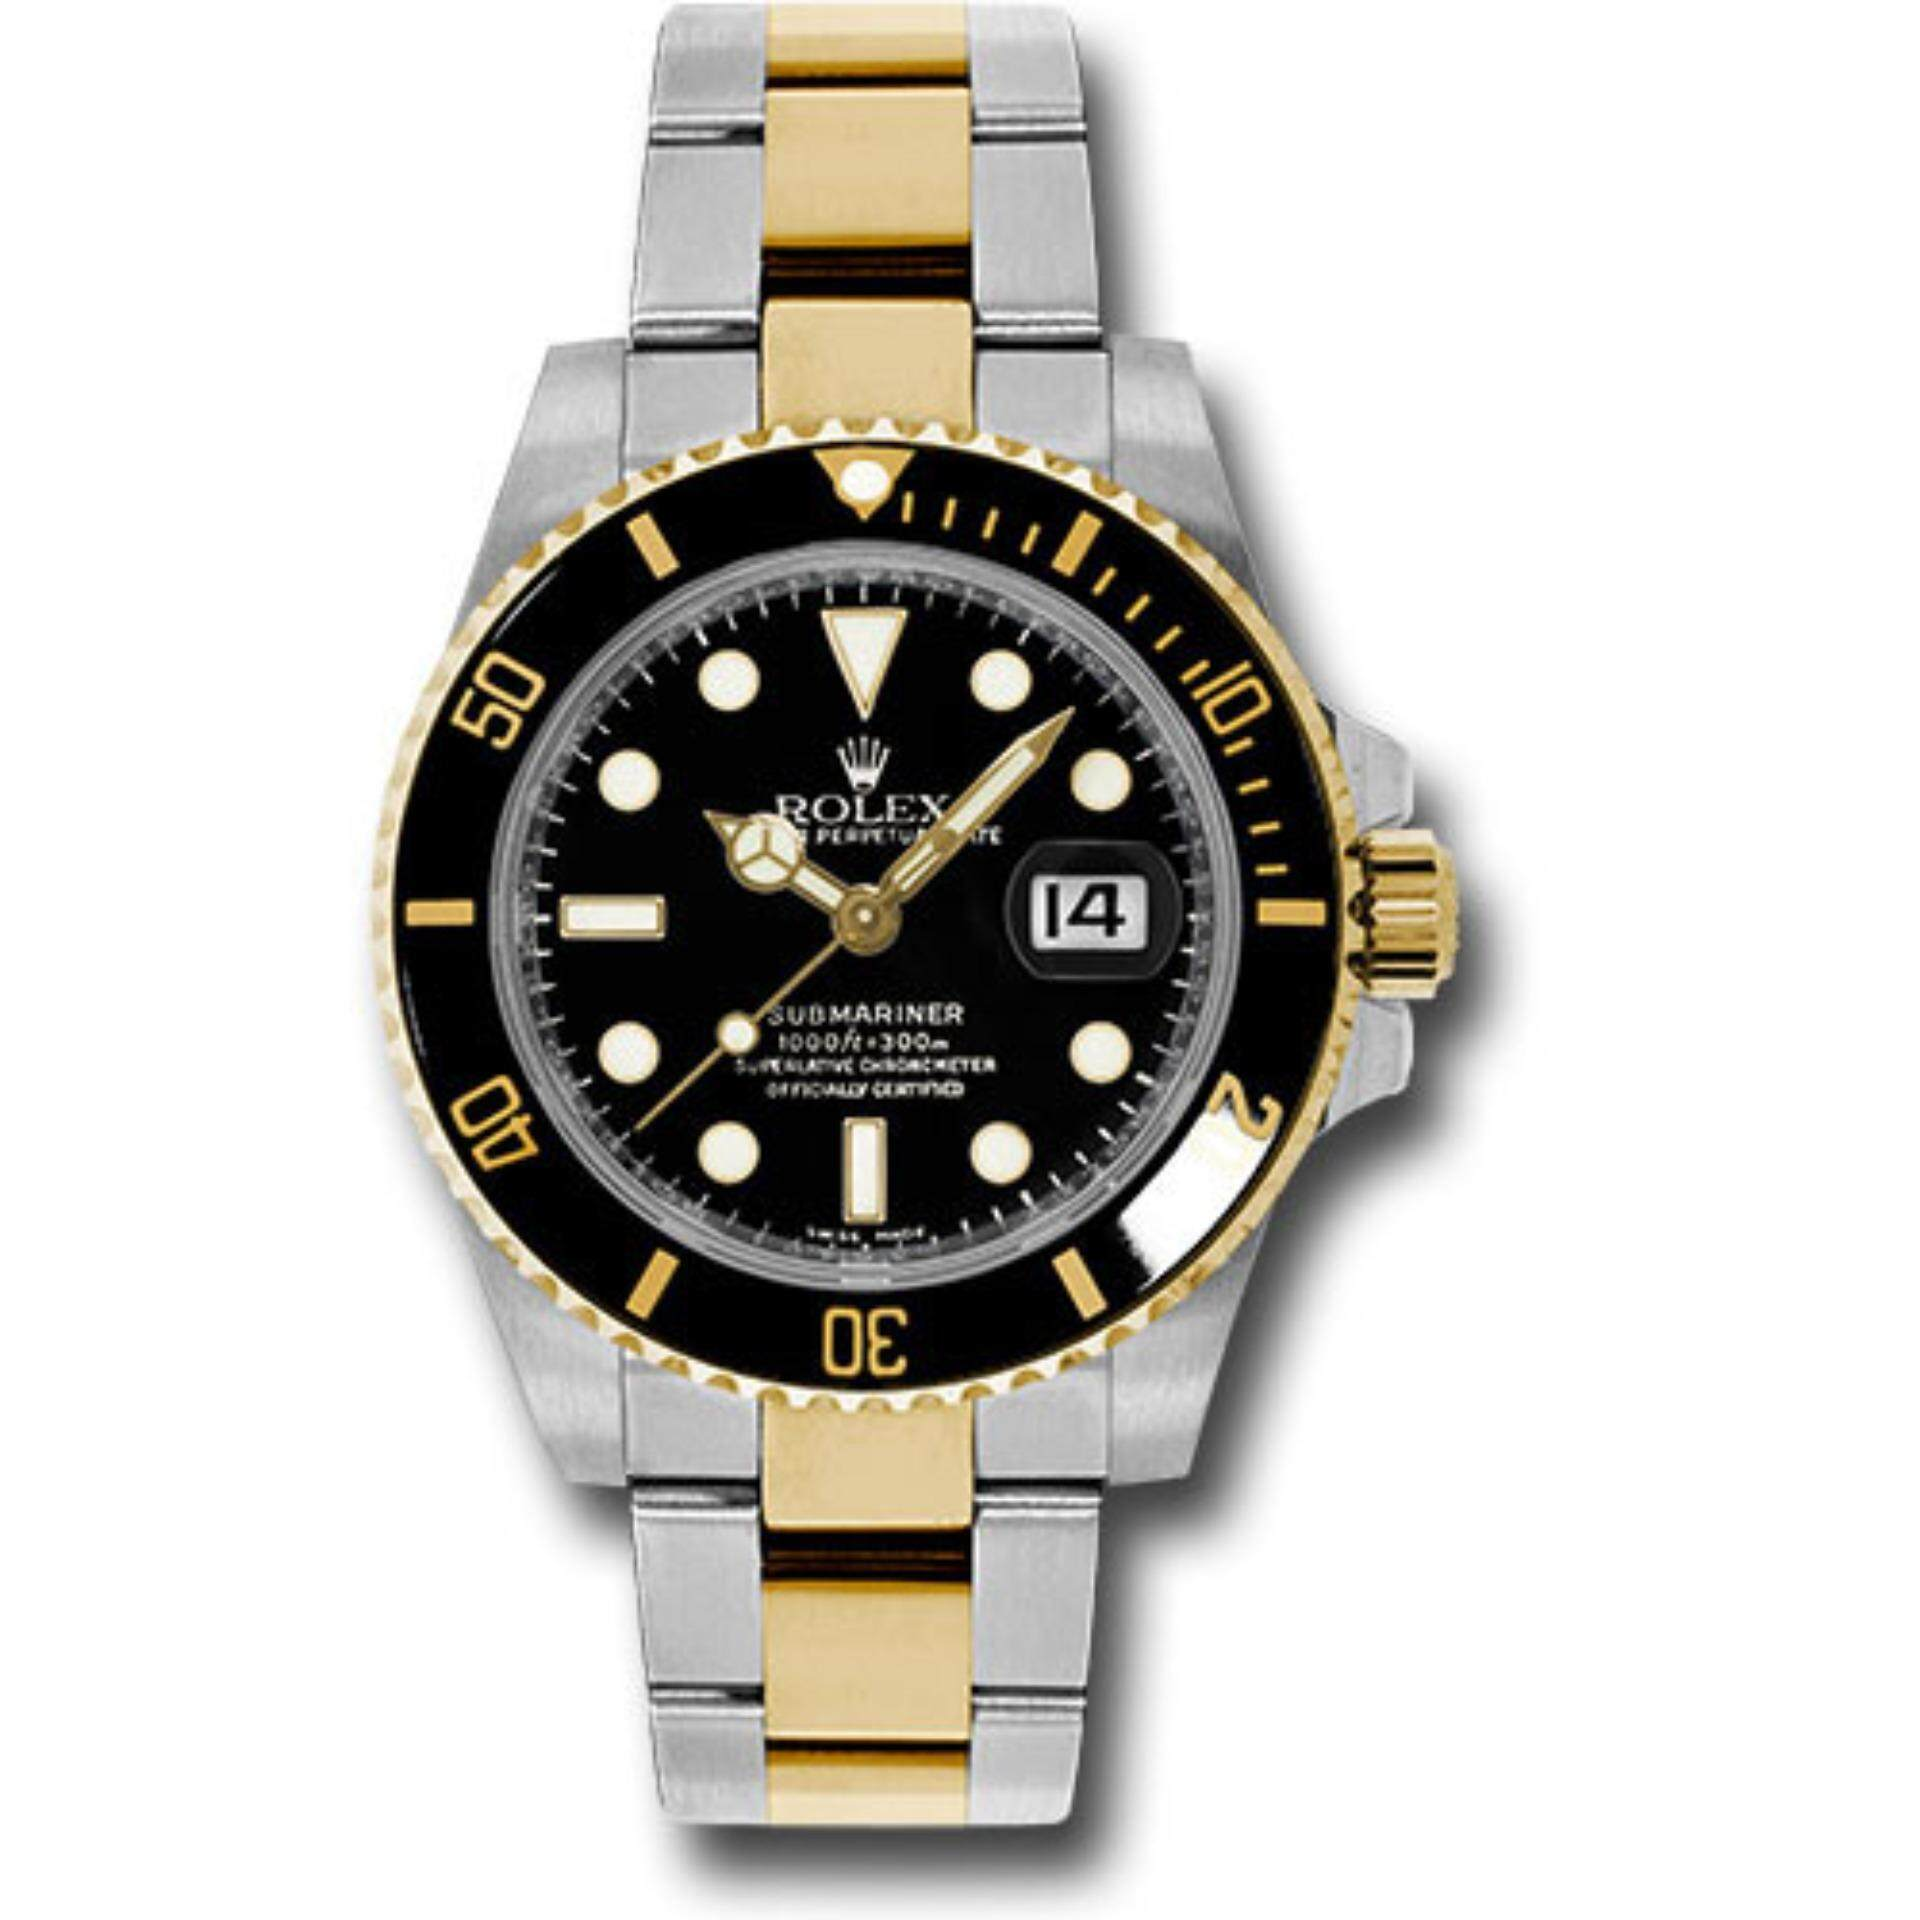 your pad rolex mode sub reebonz luxury of bn watches mariner bgcolor world fff submariner steel